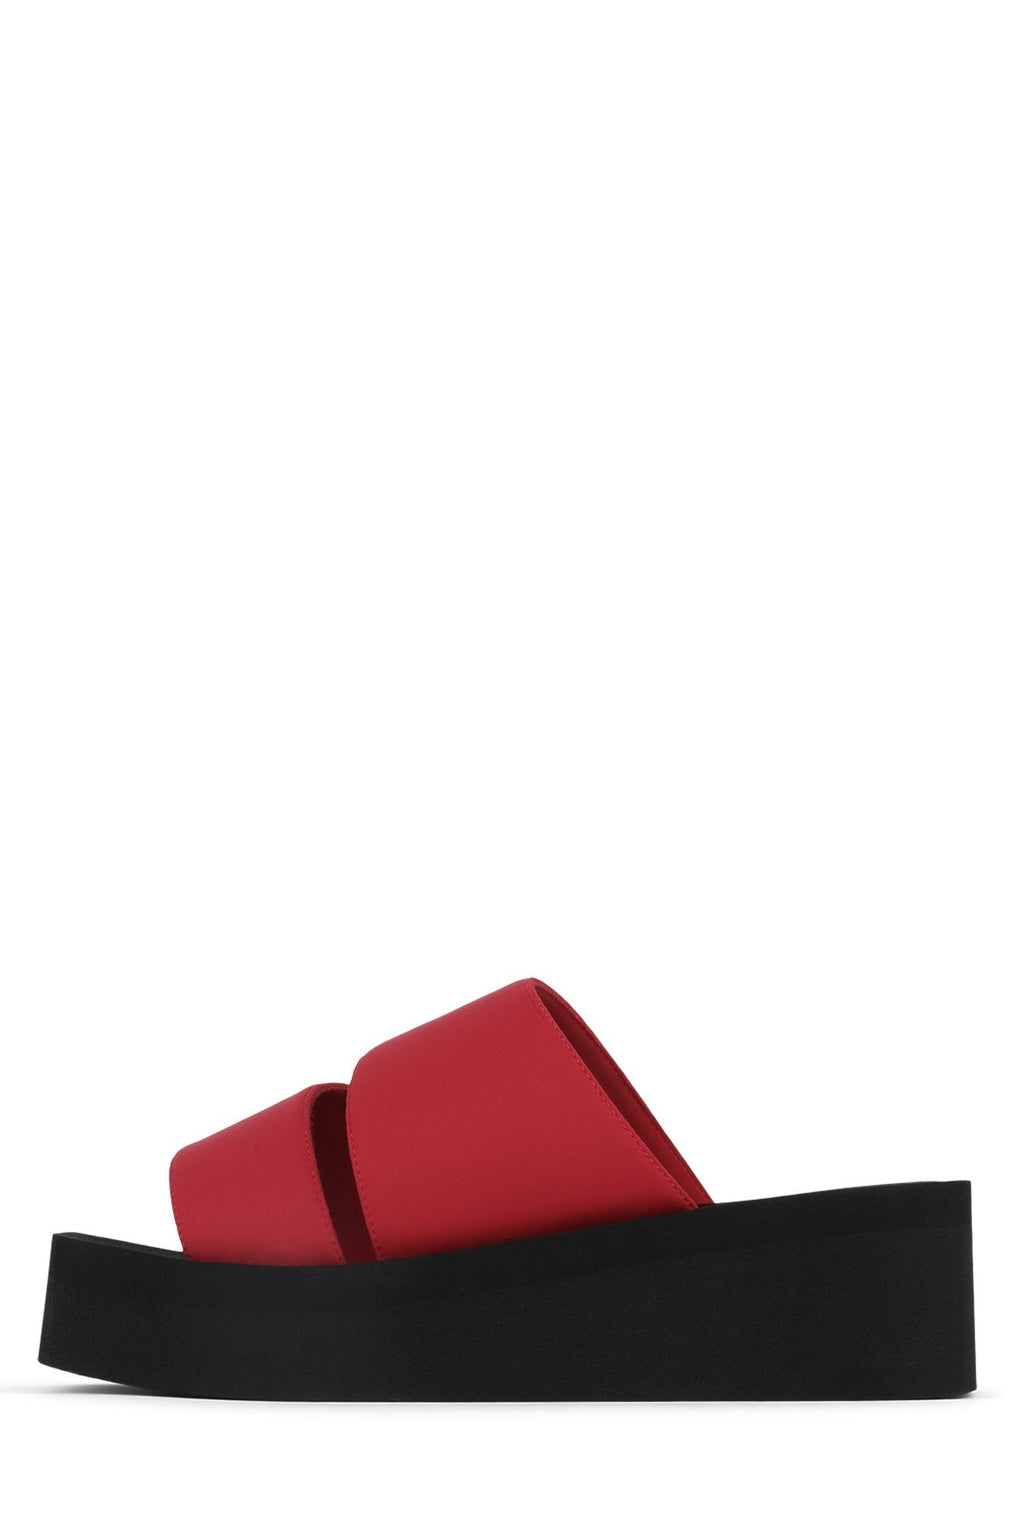 WAVEY Platform Sandal YYH Red Neoprene 6